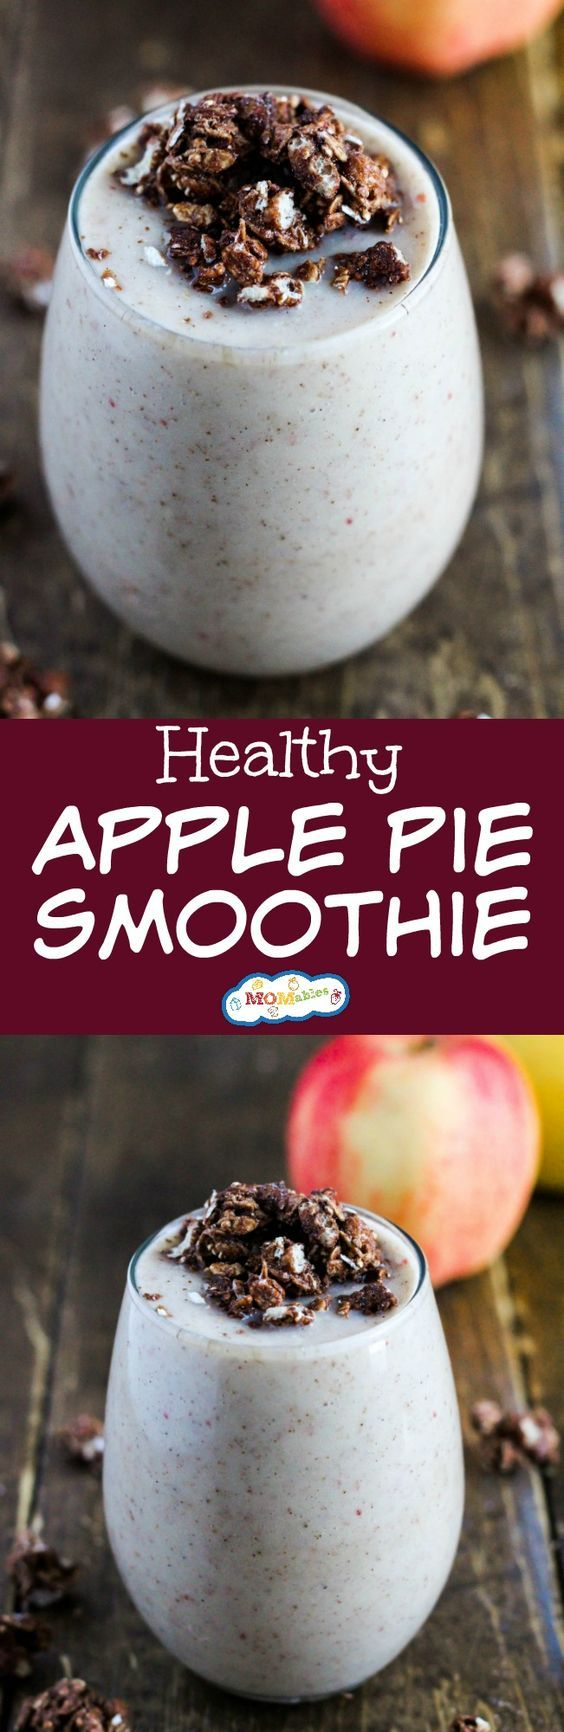 Enjoy the warm flavors of a classic fall dessert in a healthy Apple Pie Smoothie! It's packed with fruit and protein to make the perfect breakfast or snack.